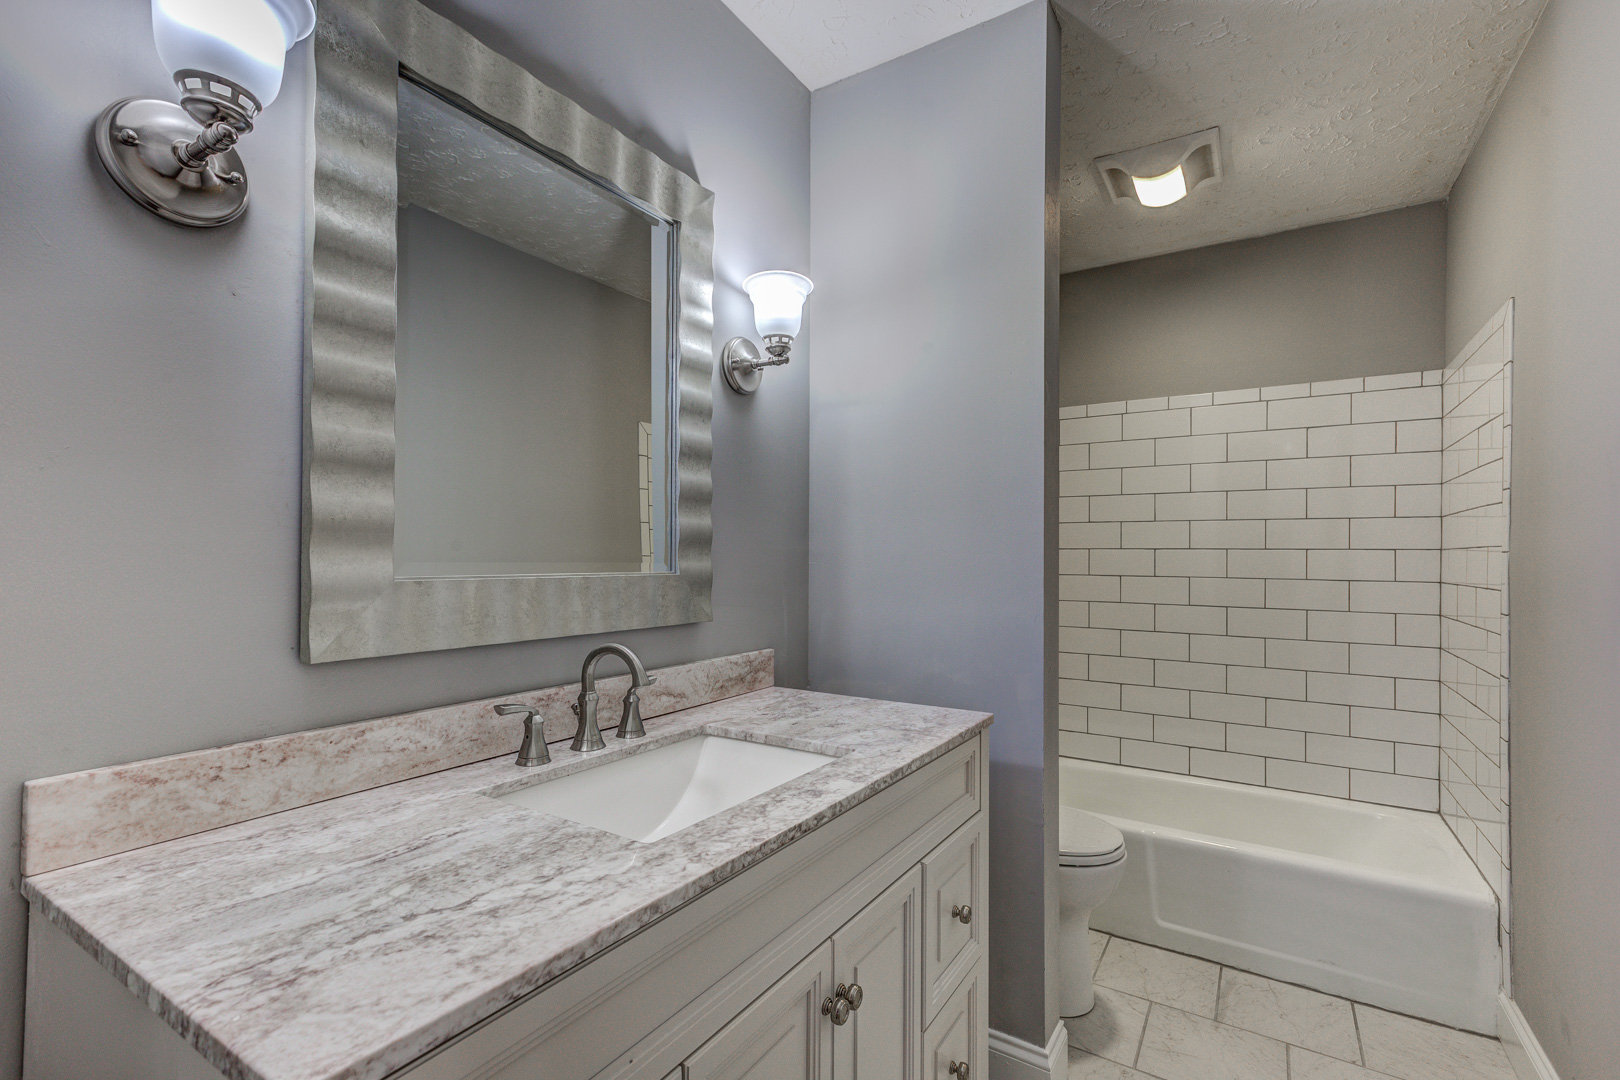 Bathroom remodel with granite countertops and subway tile shower